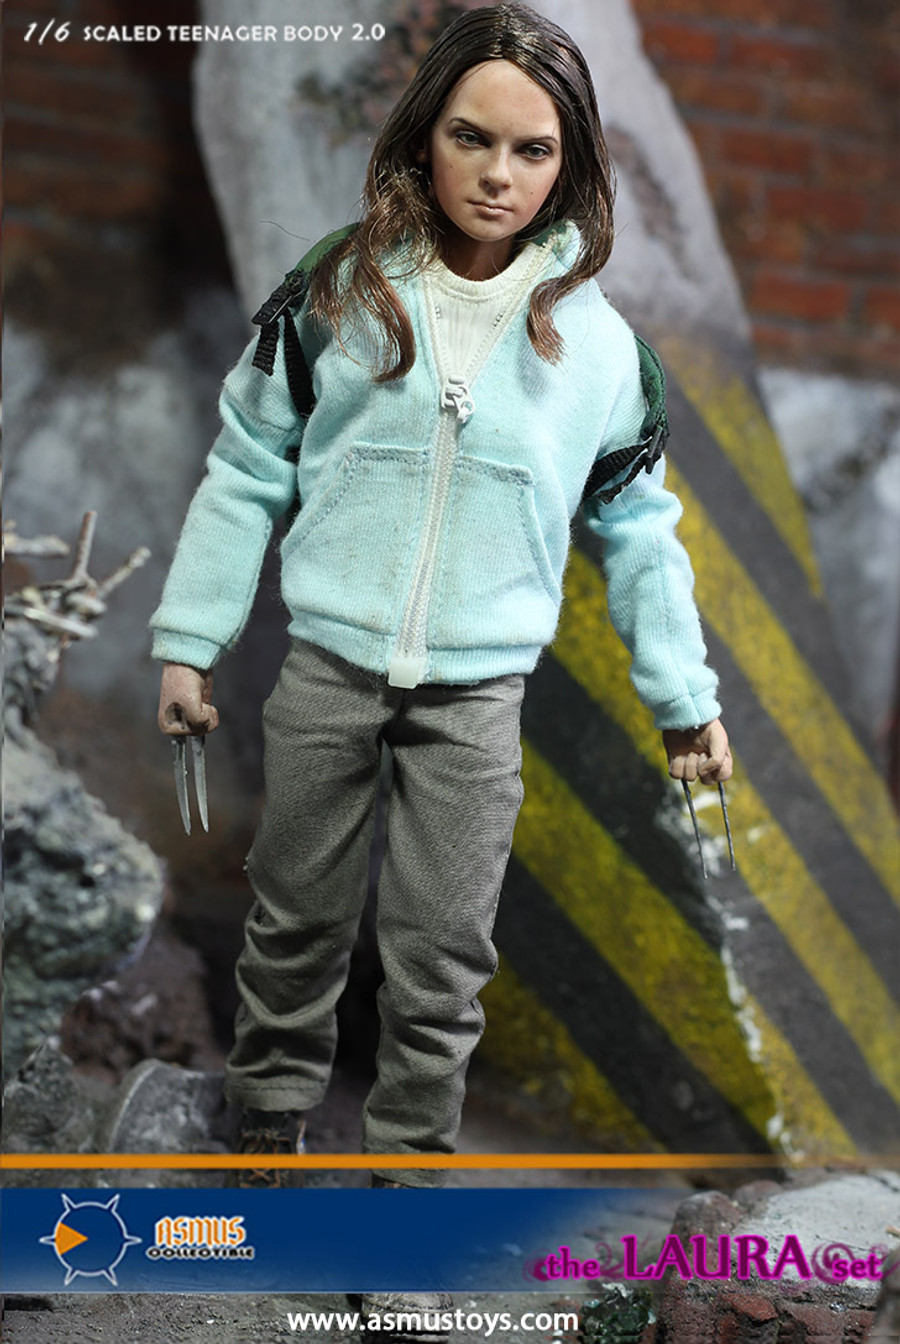 Asmus Toys - The Laura Set